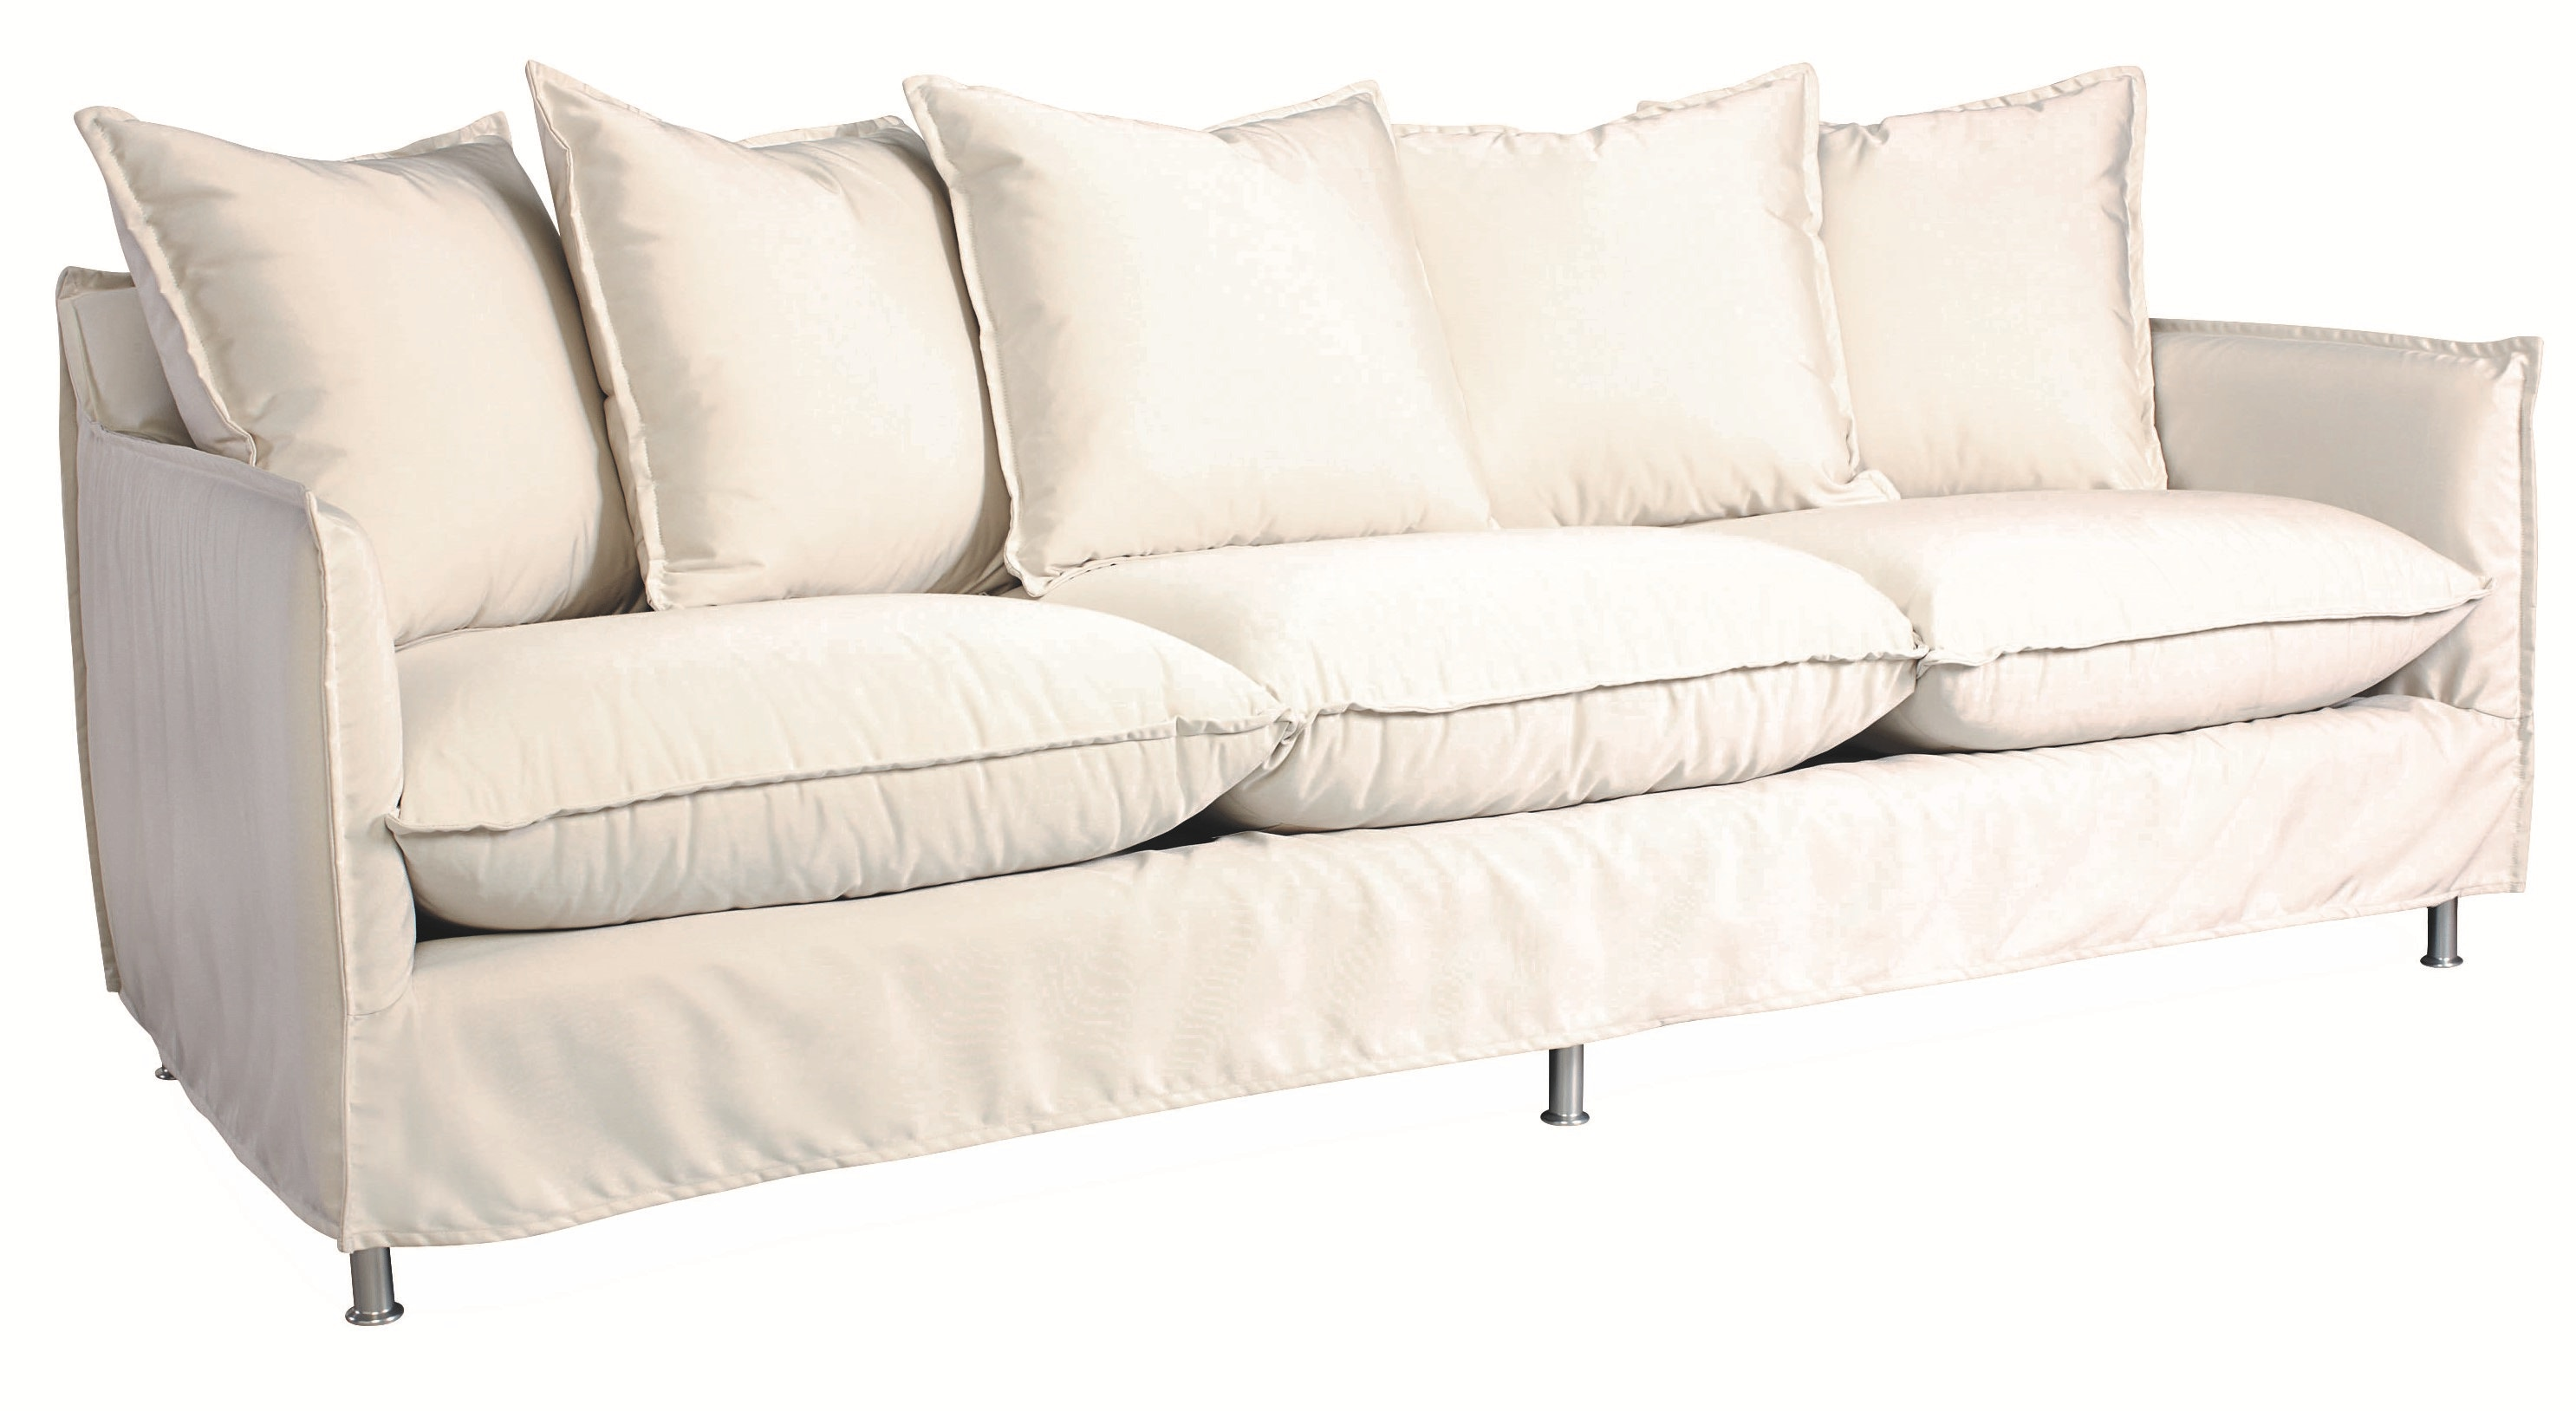 Lee Industries Sofa Leeu0027s Furnishings Such As This